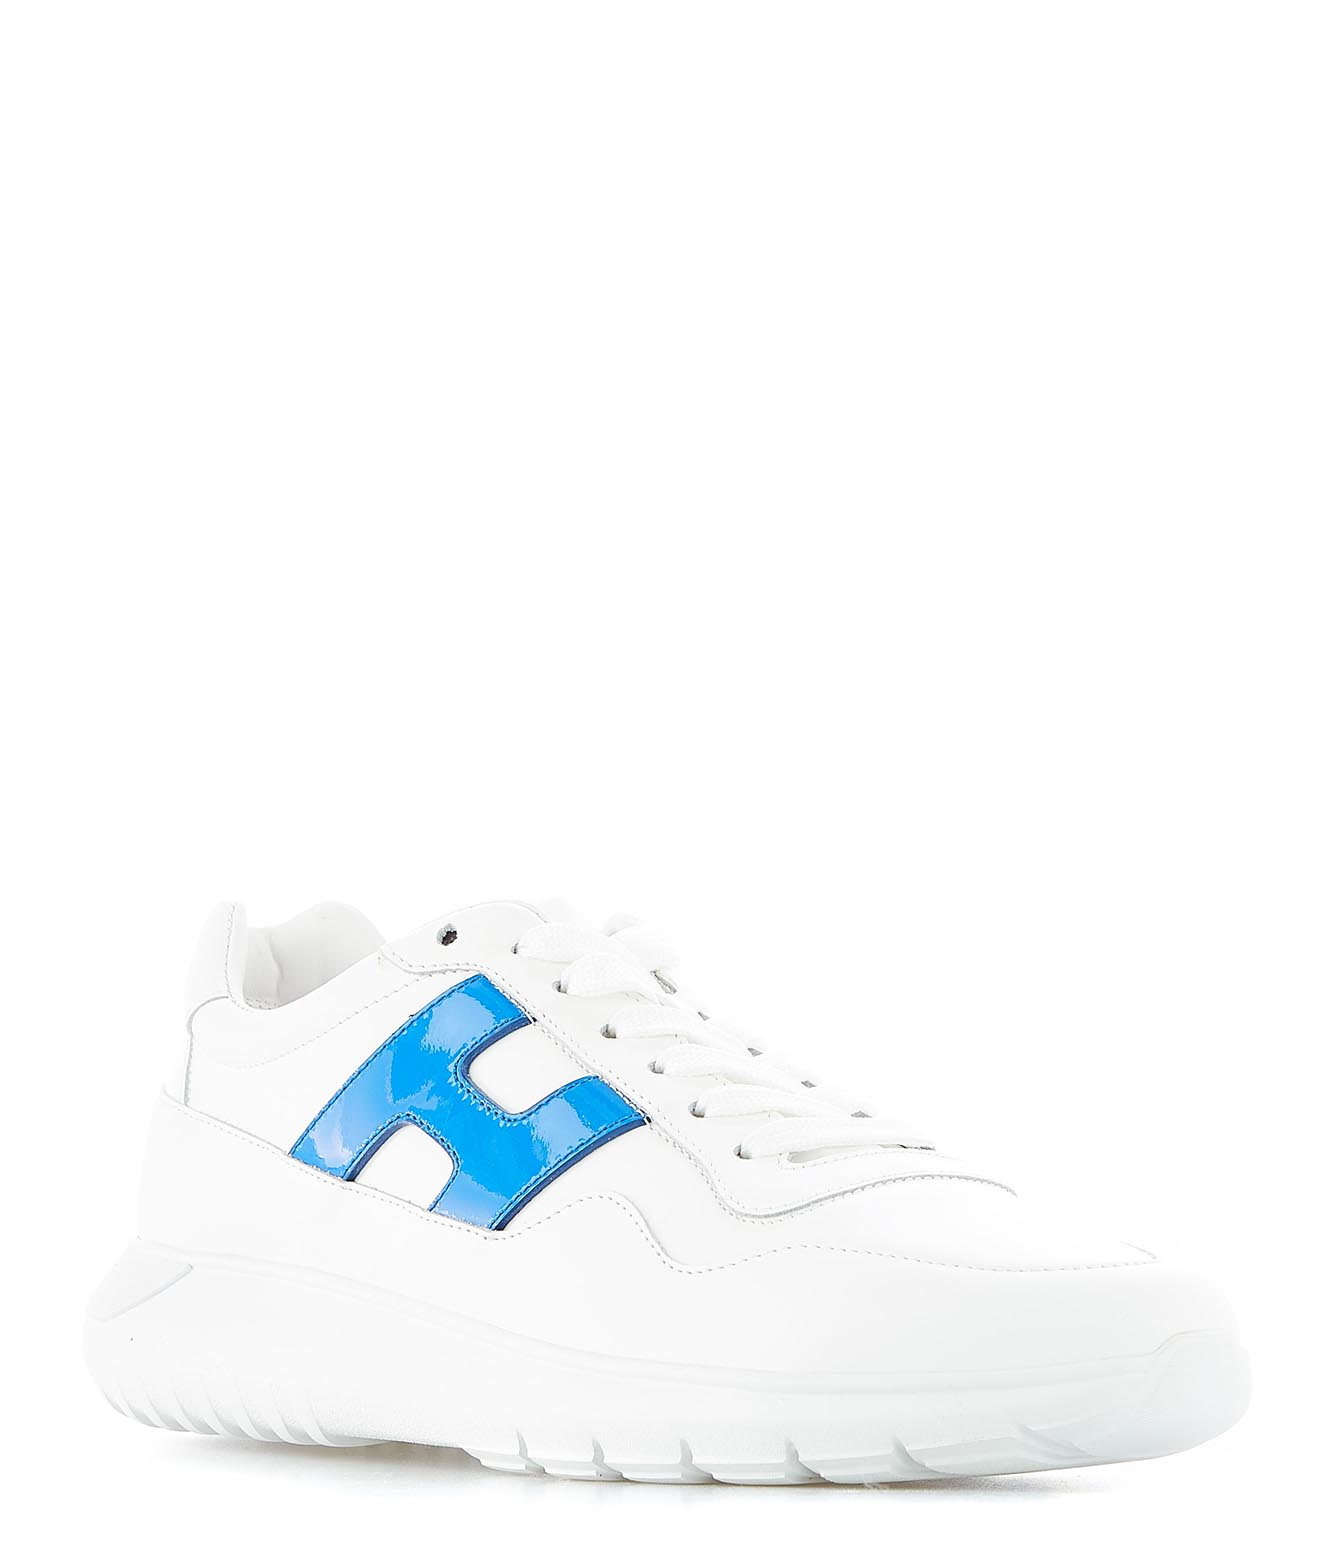 Hogan Women's shoes Sneakers - HXW3710AP21I6   Made in in in    White 9be4fe